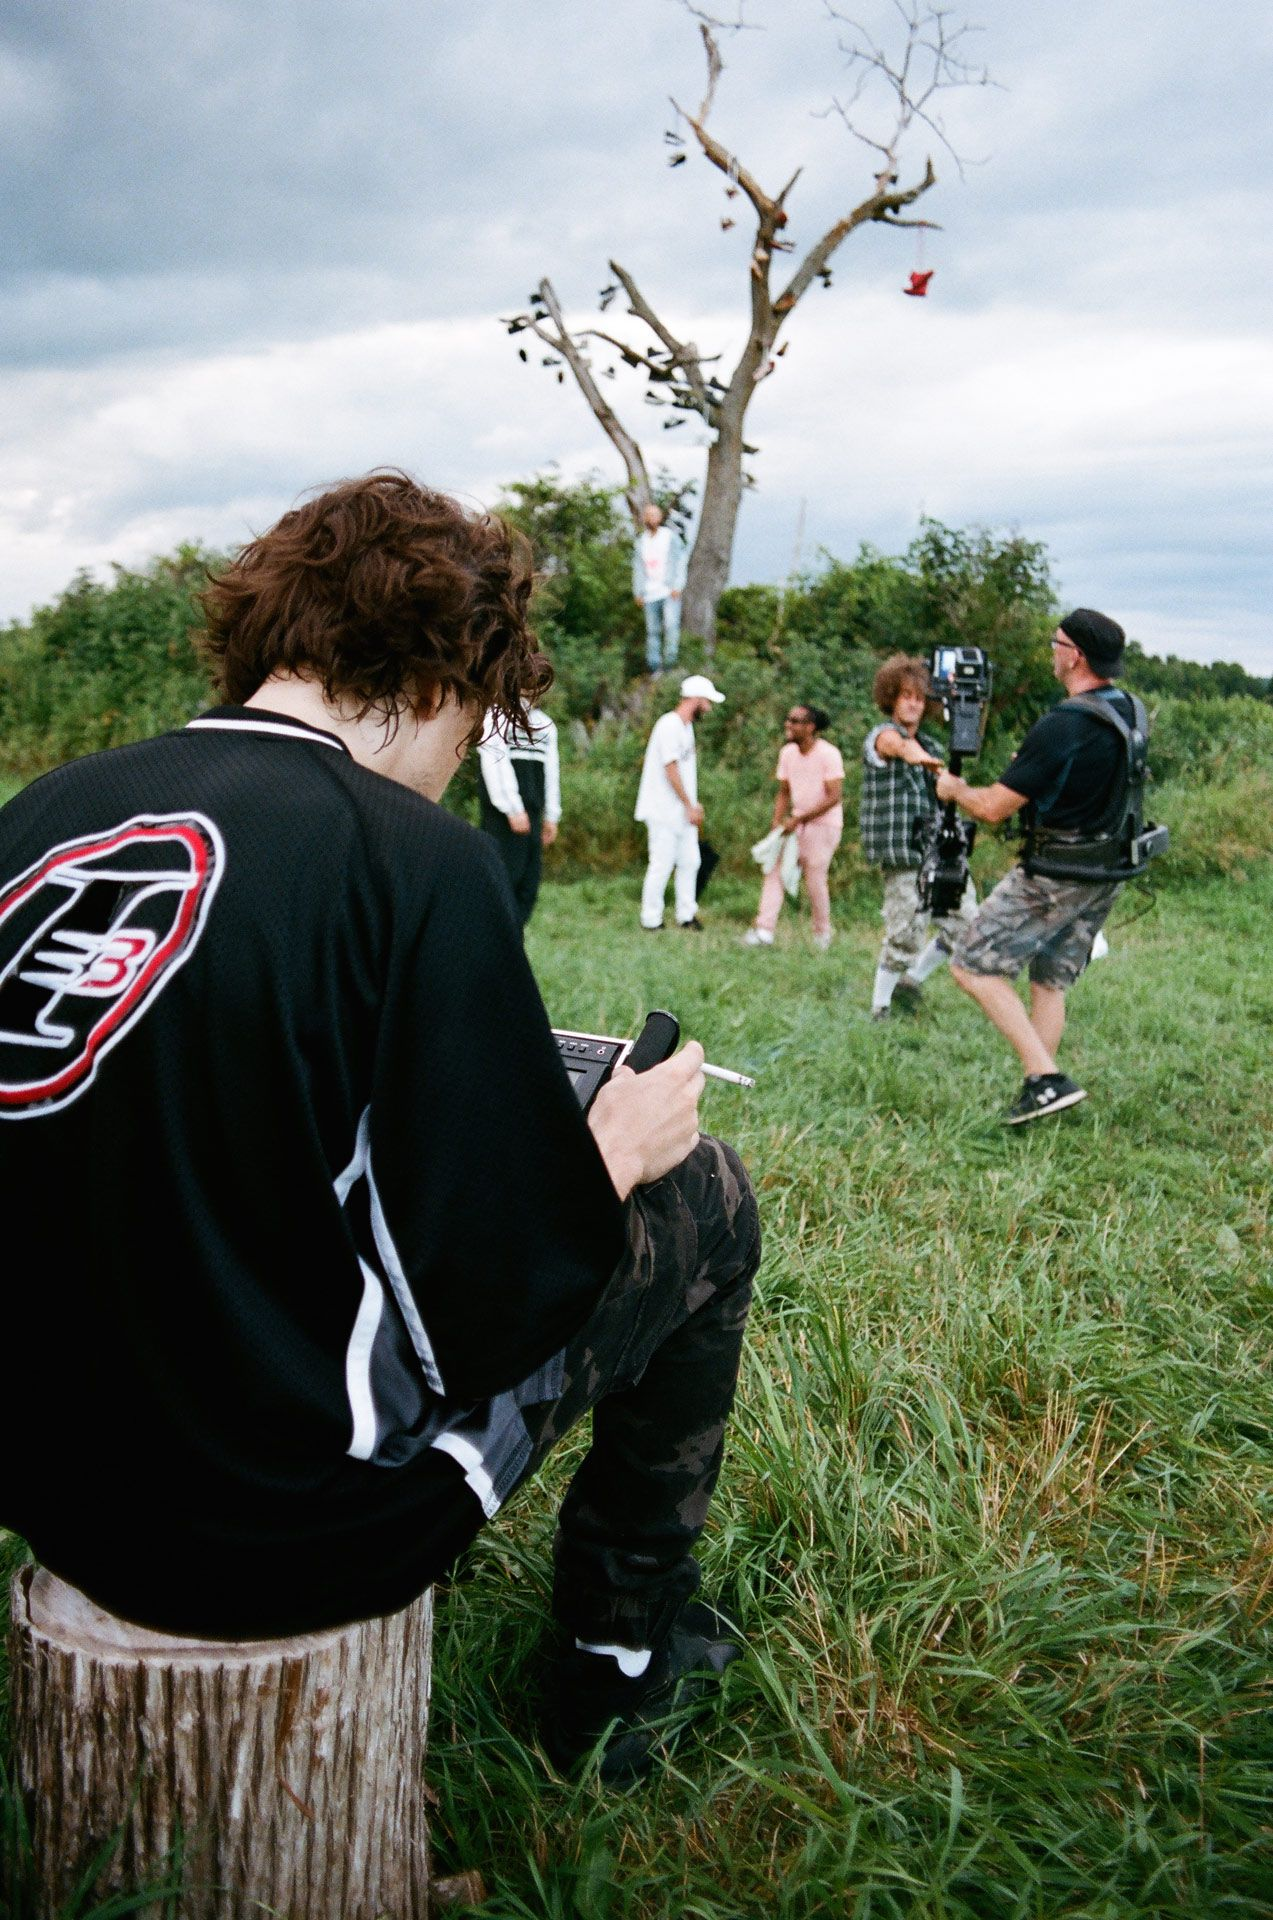 Vincent Ruel-Cote from Les Gamins sitting on wood log checking footage while filming Alaclair Ensemble hip hop collective music video Felix featuring rapper Souldia